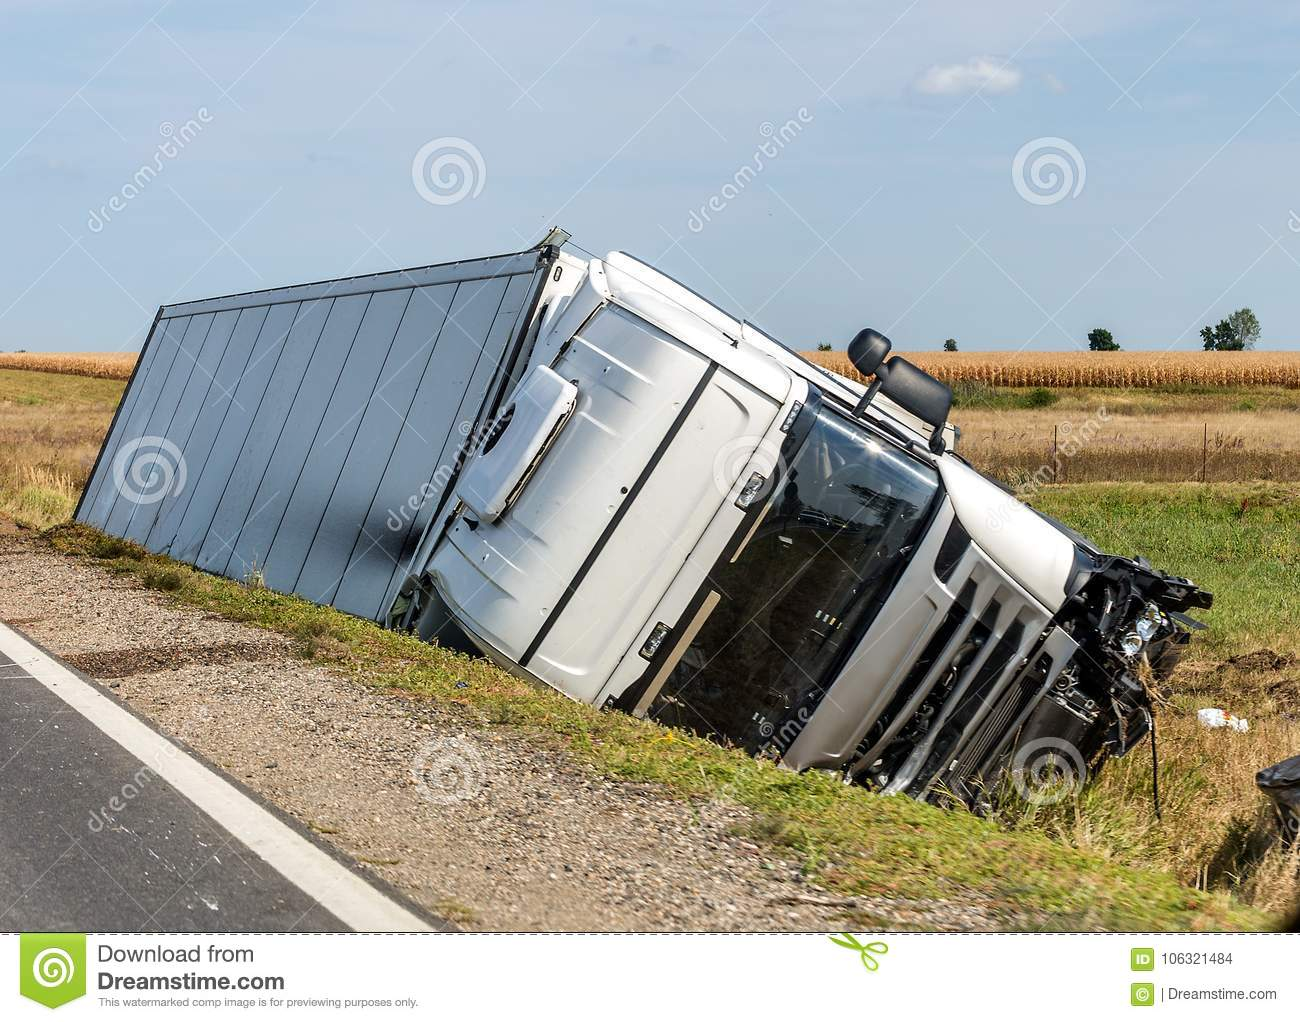 The Truck Lies In A Side Ditch After The Road Accident. Stock Photo ...